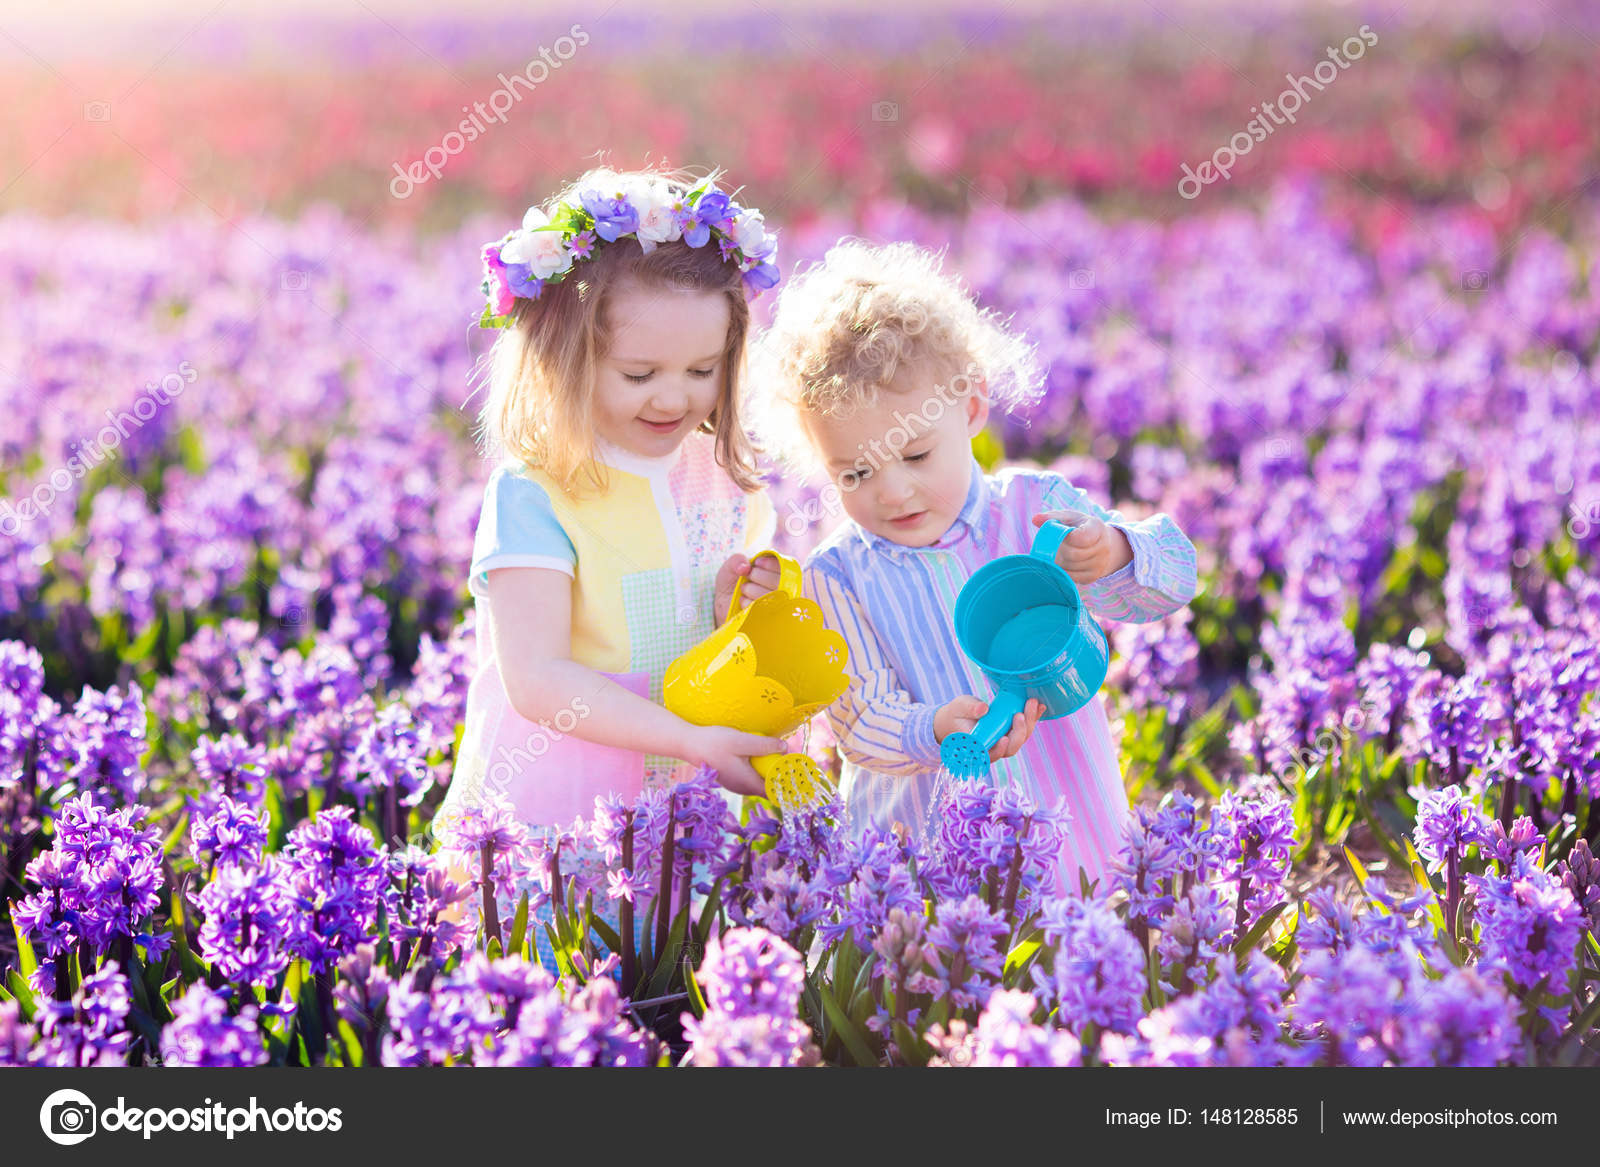 Kids plant and water flowers in spring garden stock photo children planting spring flowers in sunny garden little boy and girl gardener plant hyacinth daffodil snowdrop in flower bed gardening tools and water mightylinksfo Image collections